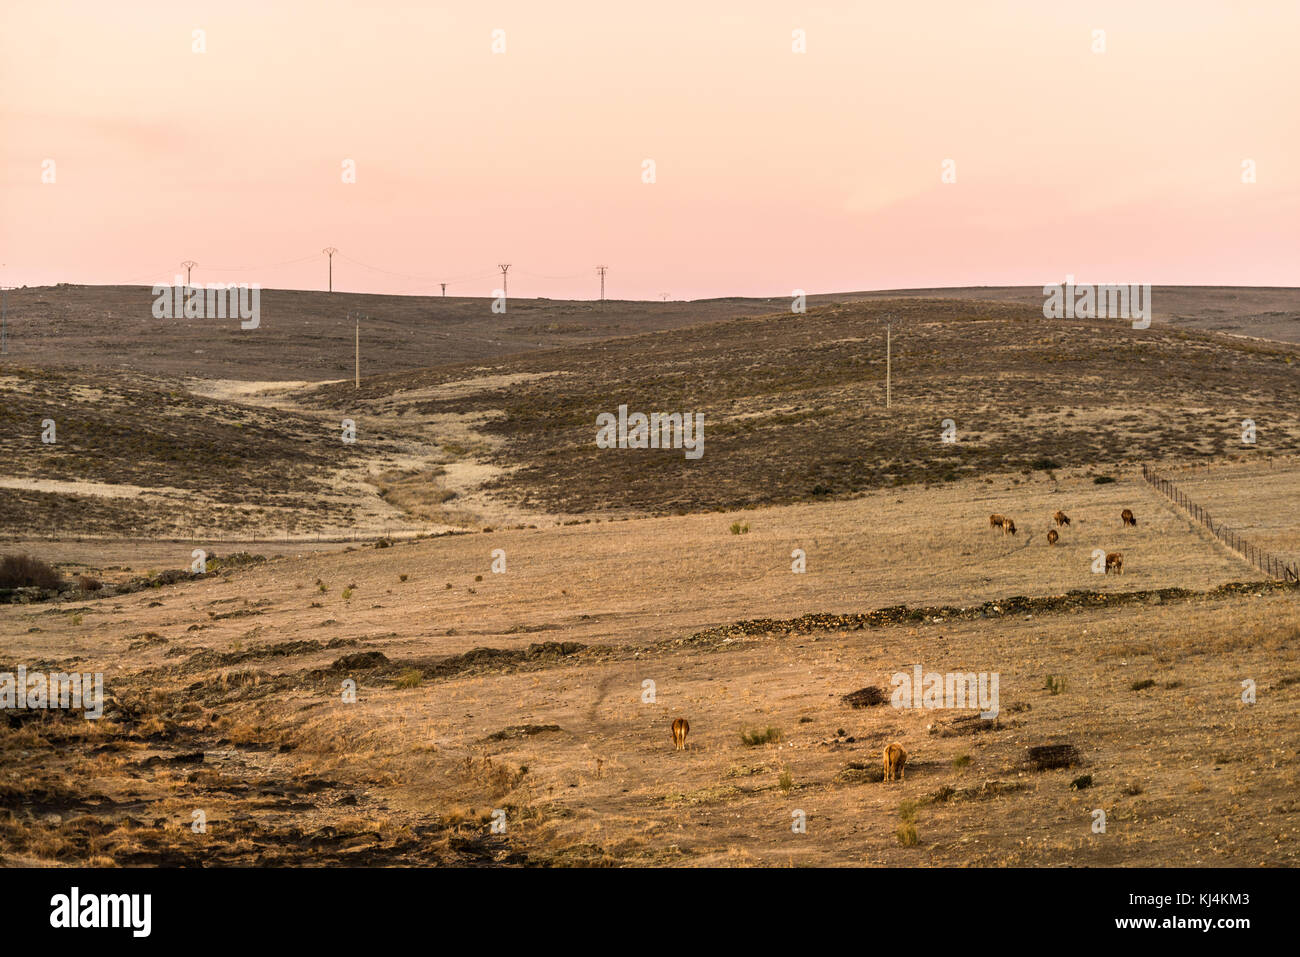 Dusk in a desert landscape of the steppe during a long period of drought. Cows on the background. Cáceres, - Stock Image